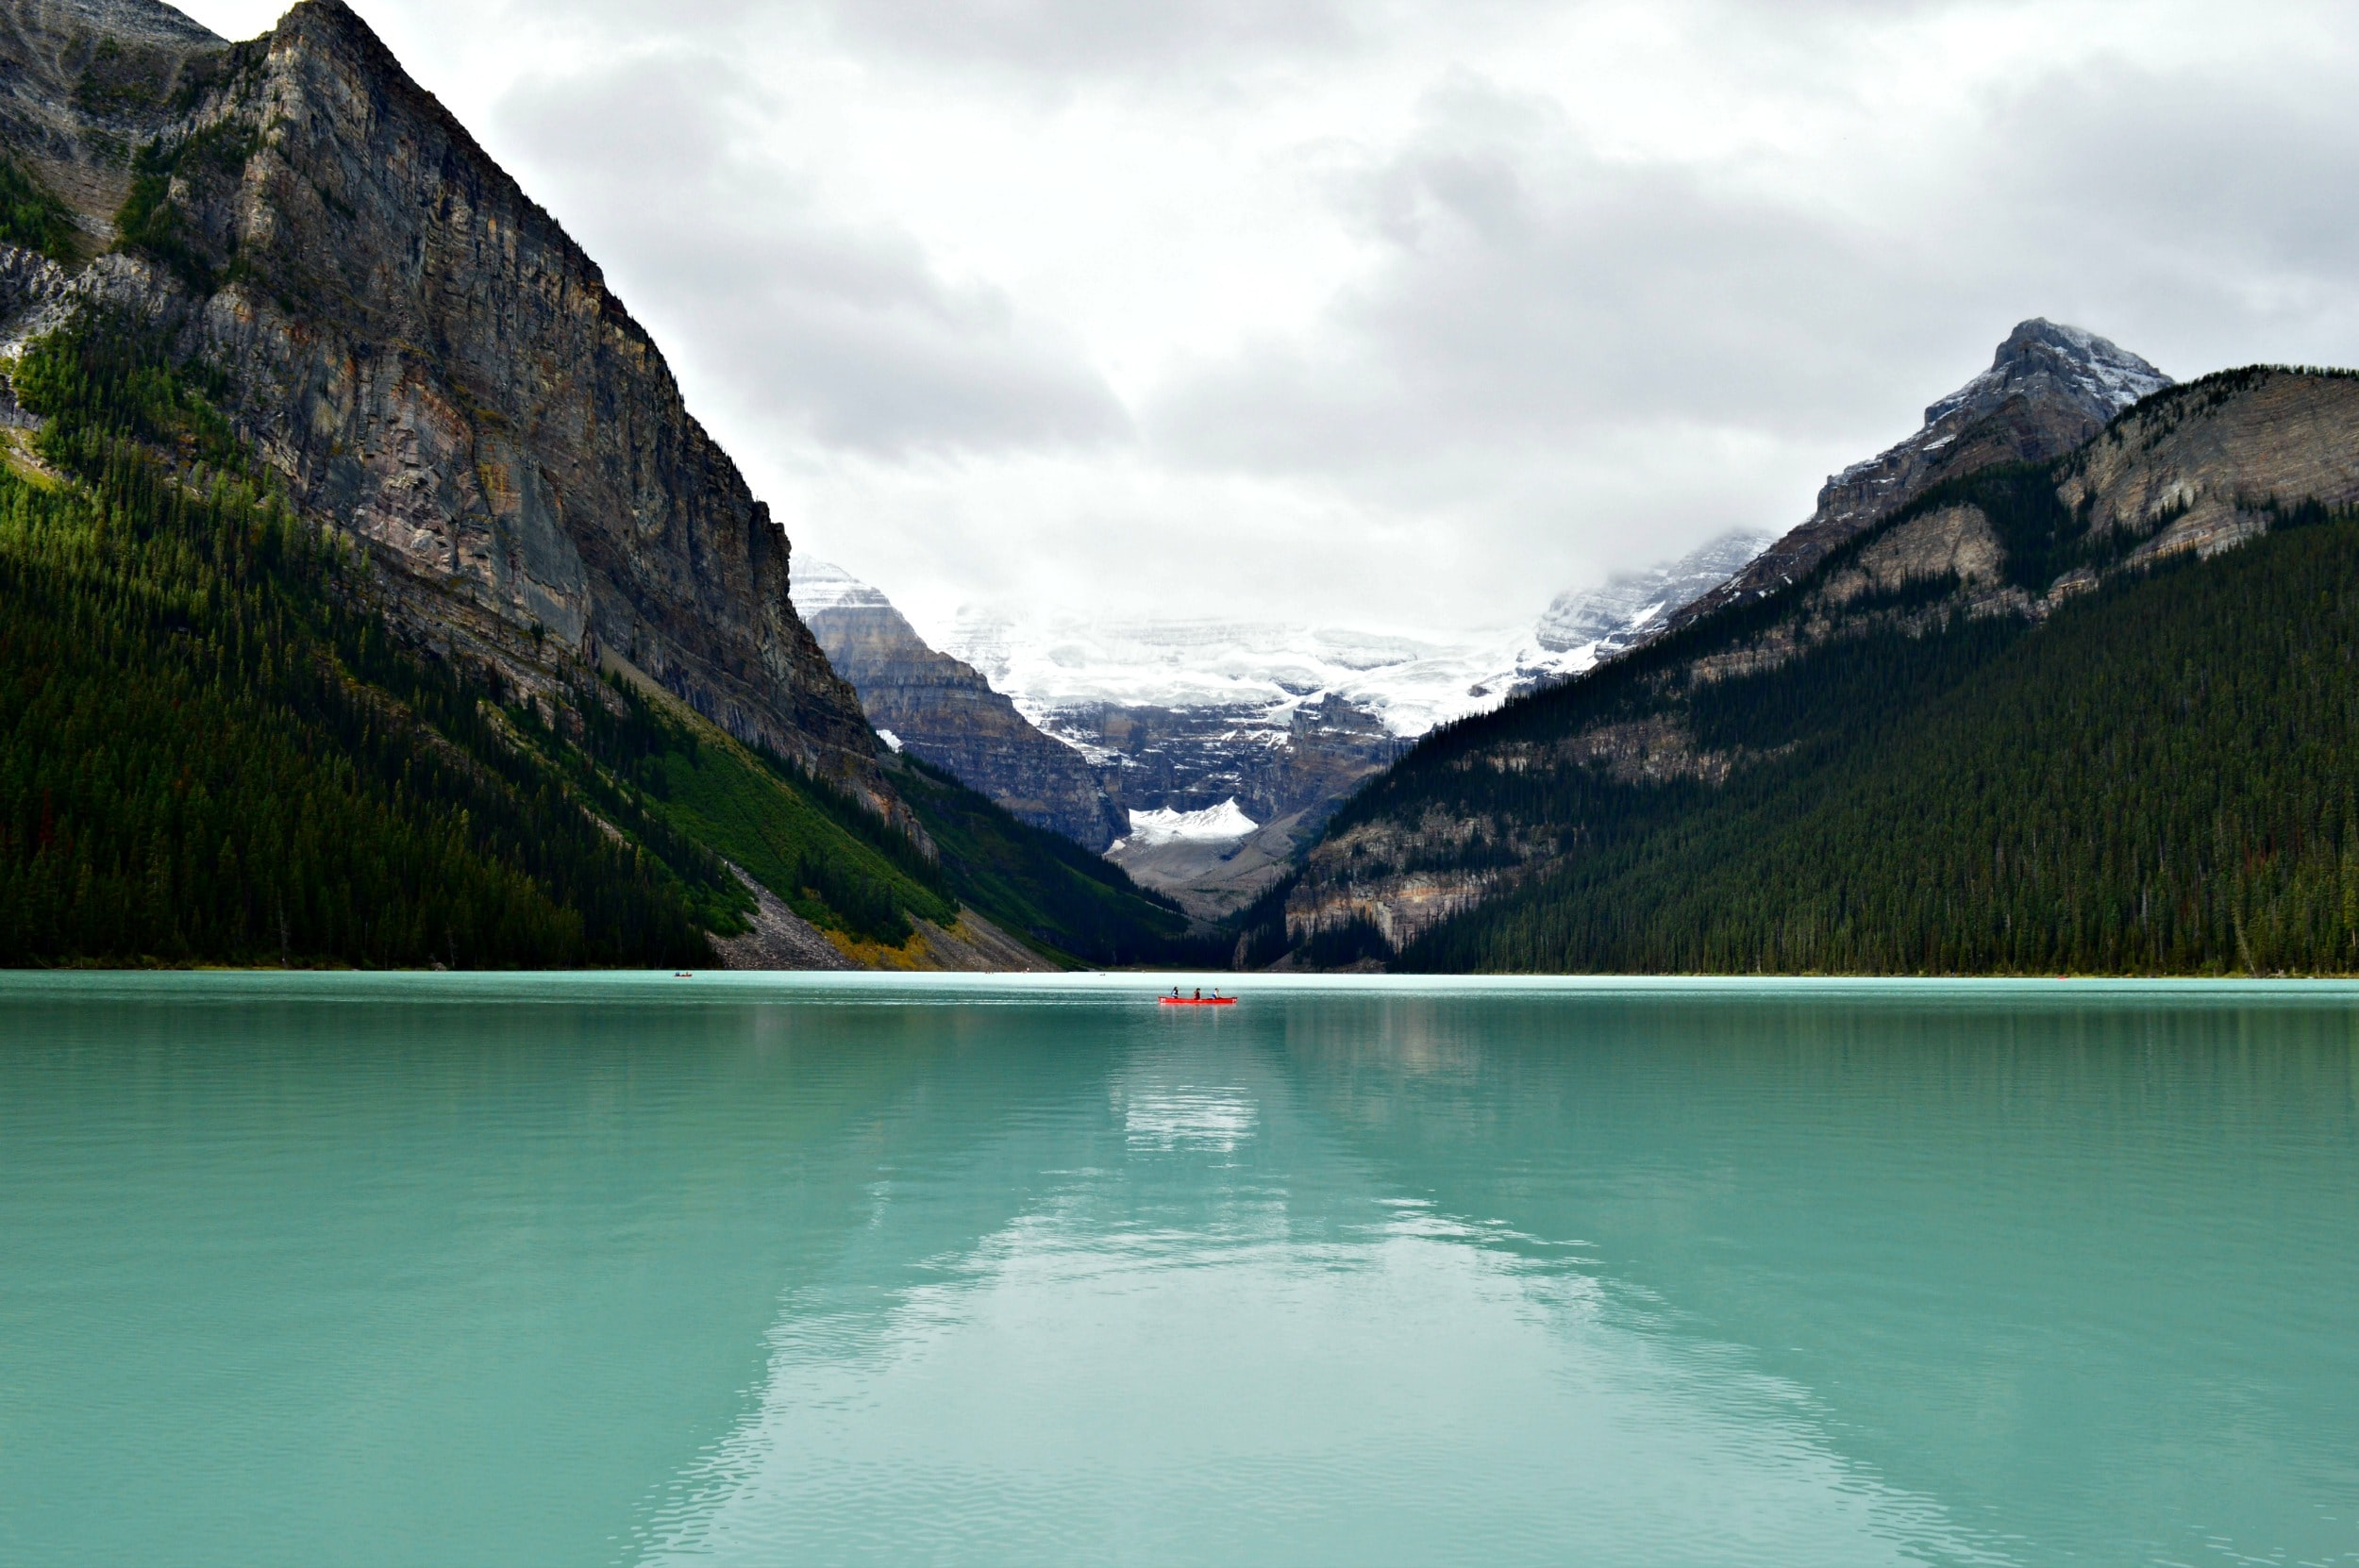 A red boat on the turquoise surface of Lake Louise surrounded by jagged mountains